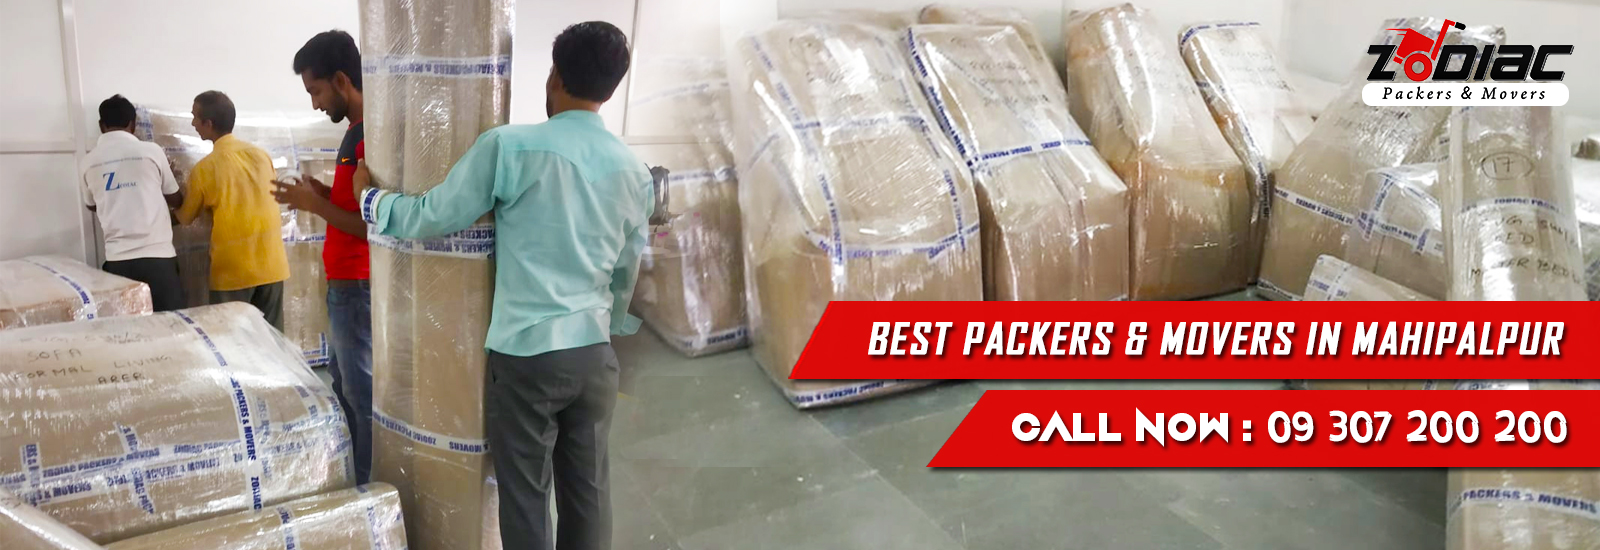 Packers and Movers in Mahipalpur